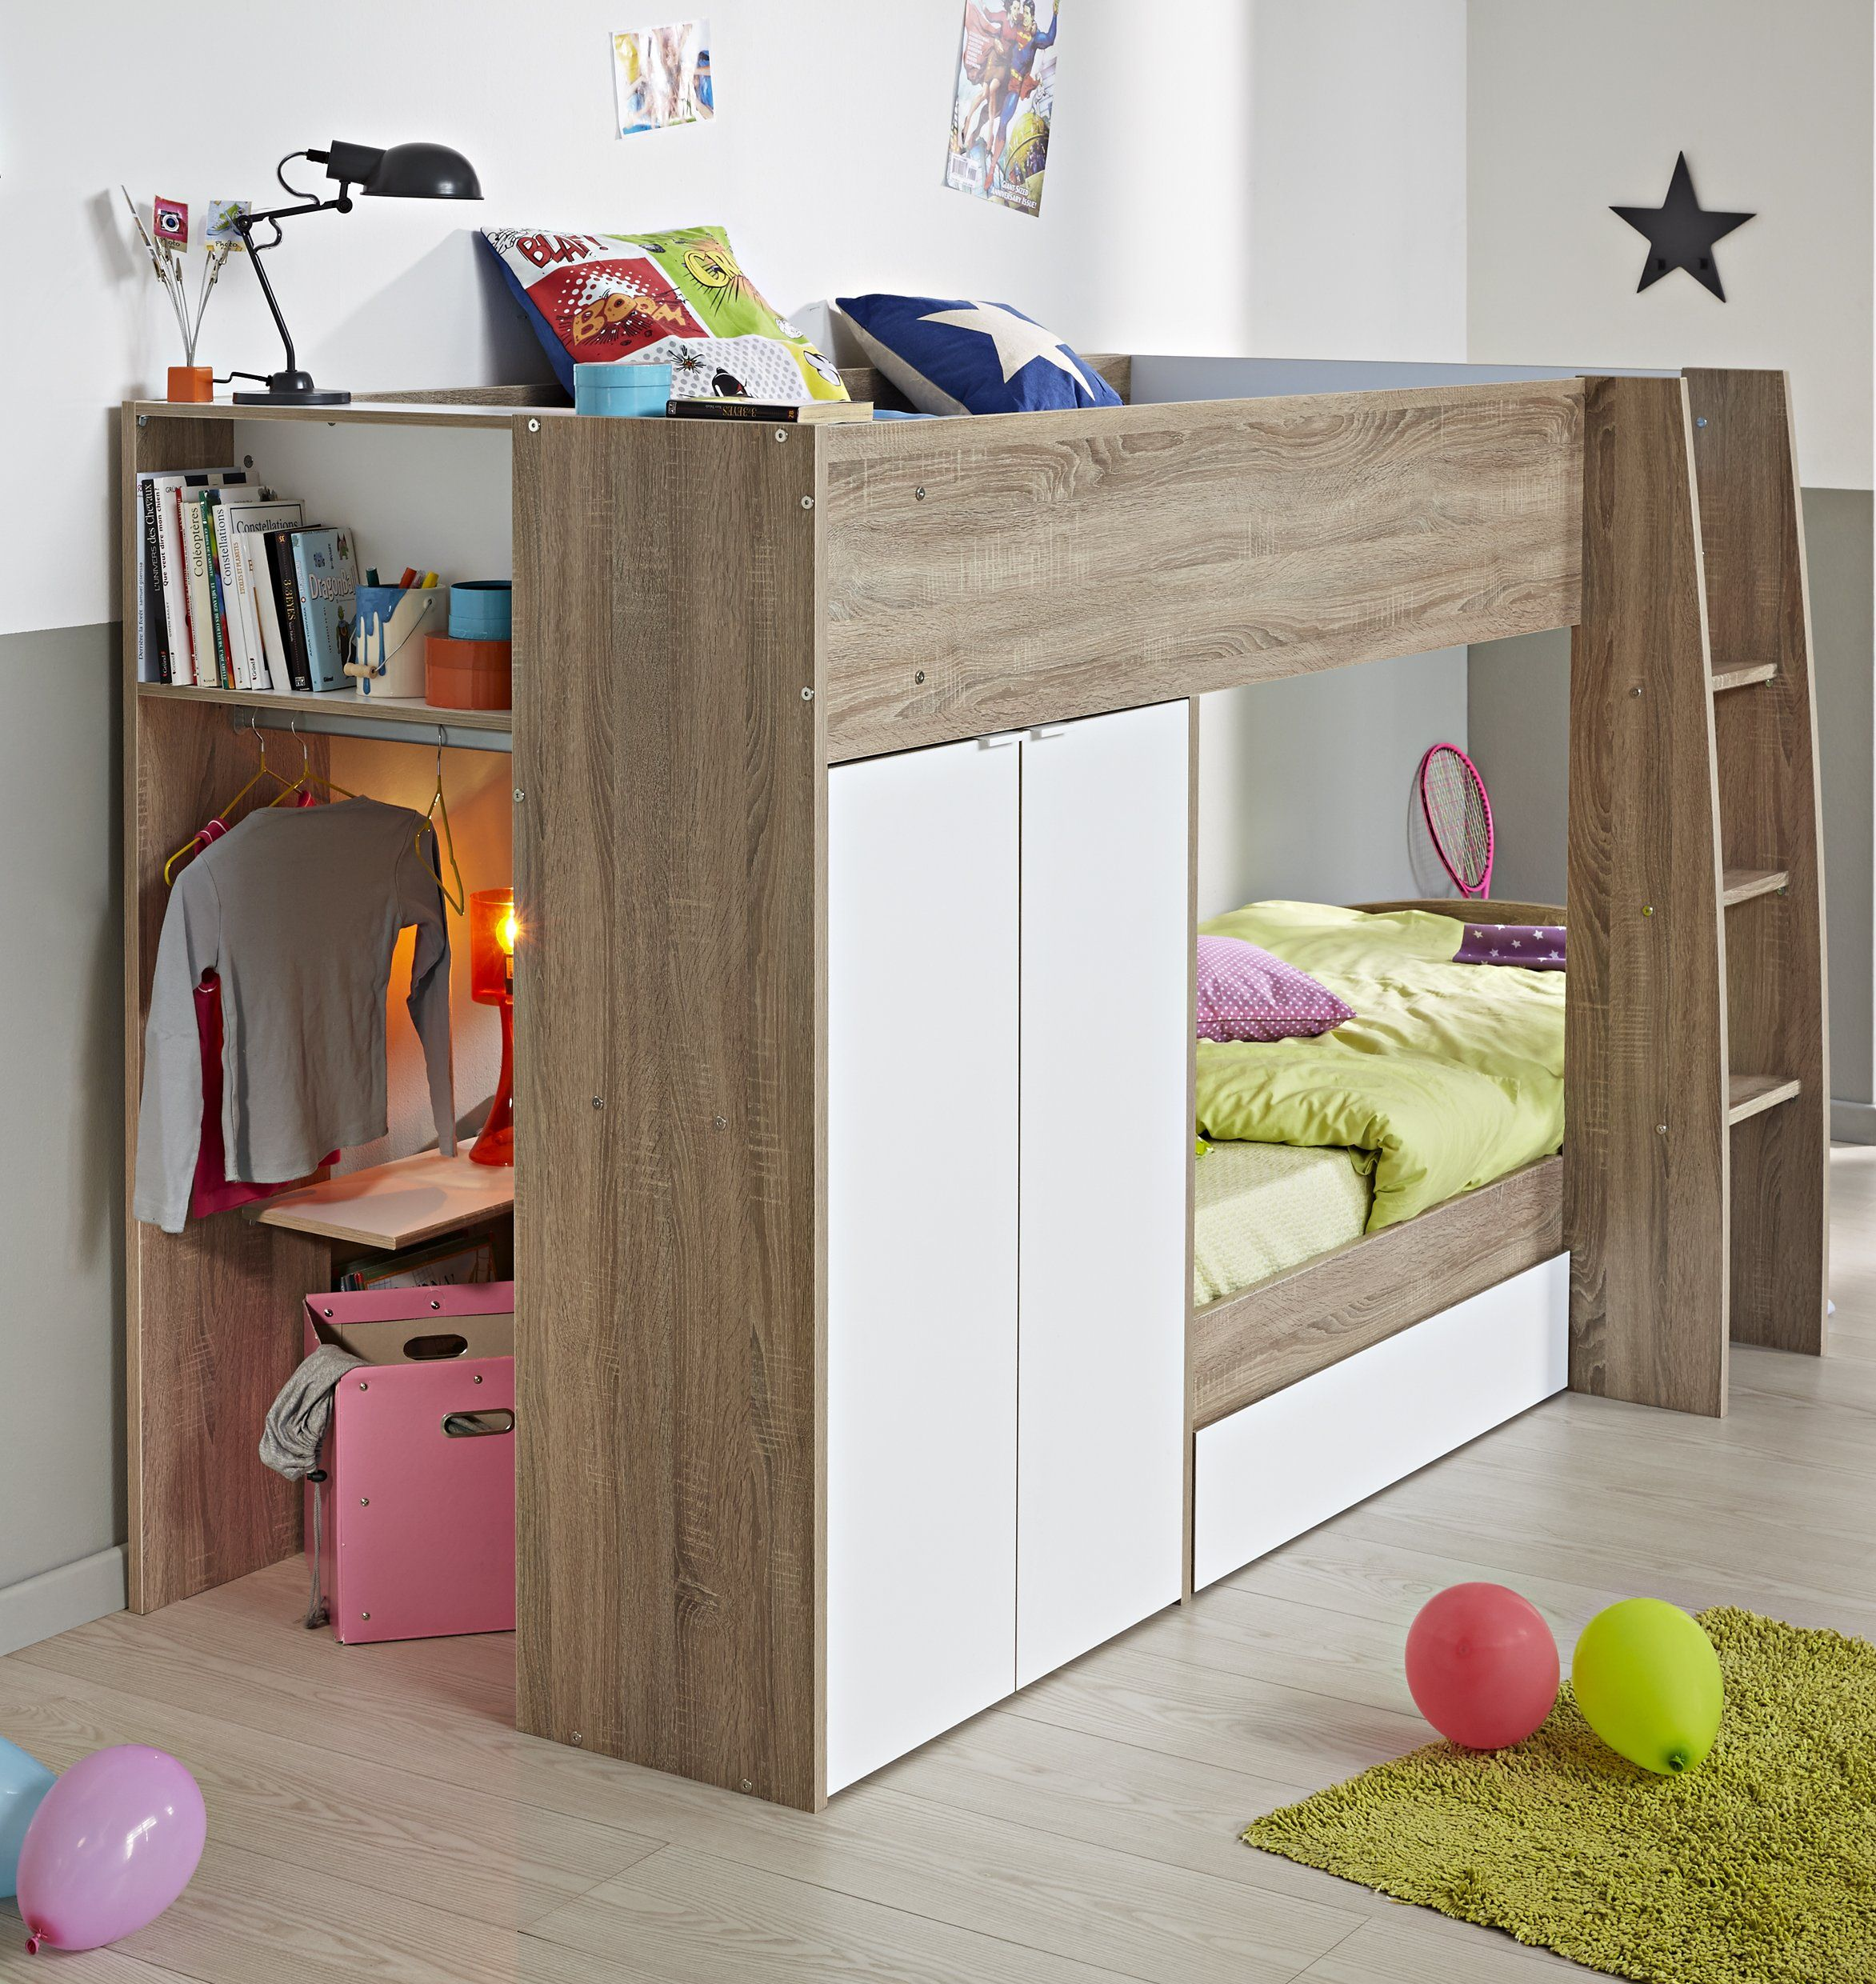 Pictures for kids bedrooms cool kids bedroom bedrooms for Cool kids bedroom designs